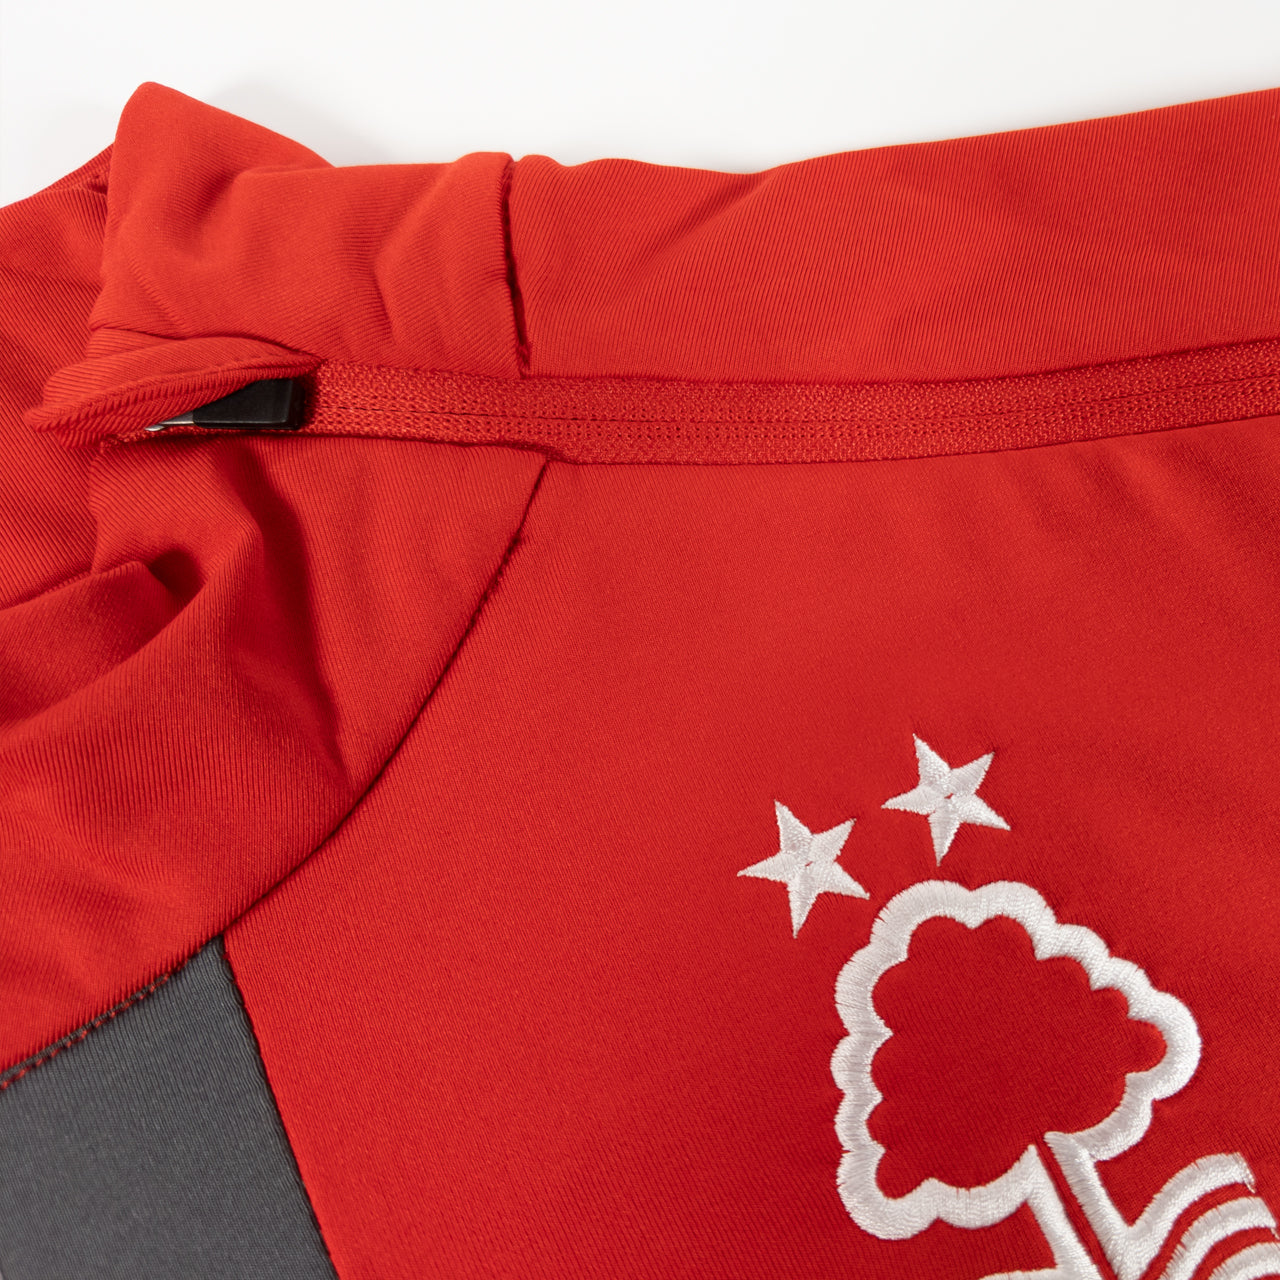 NFFC Junior Player 1/4 Zip Top 19/20